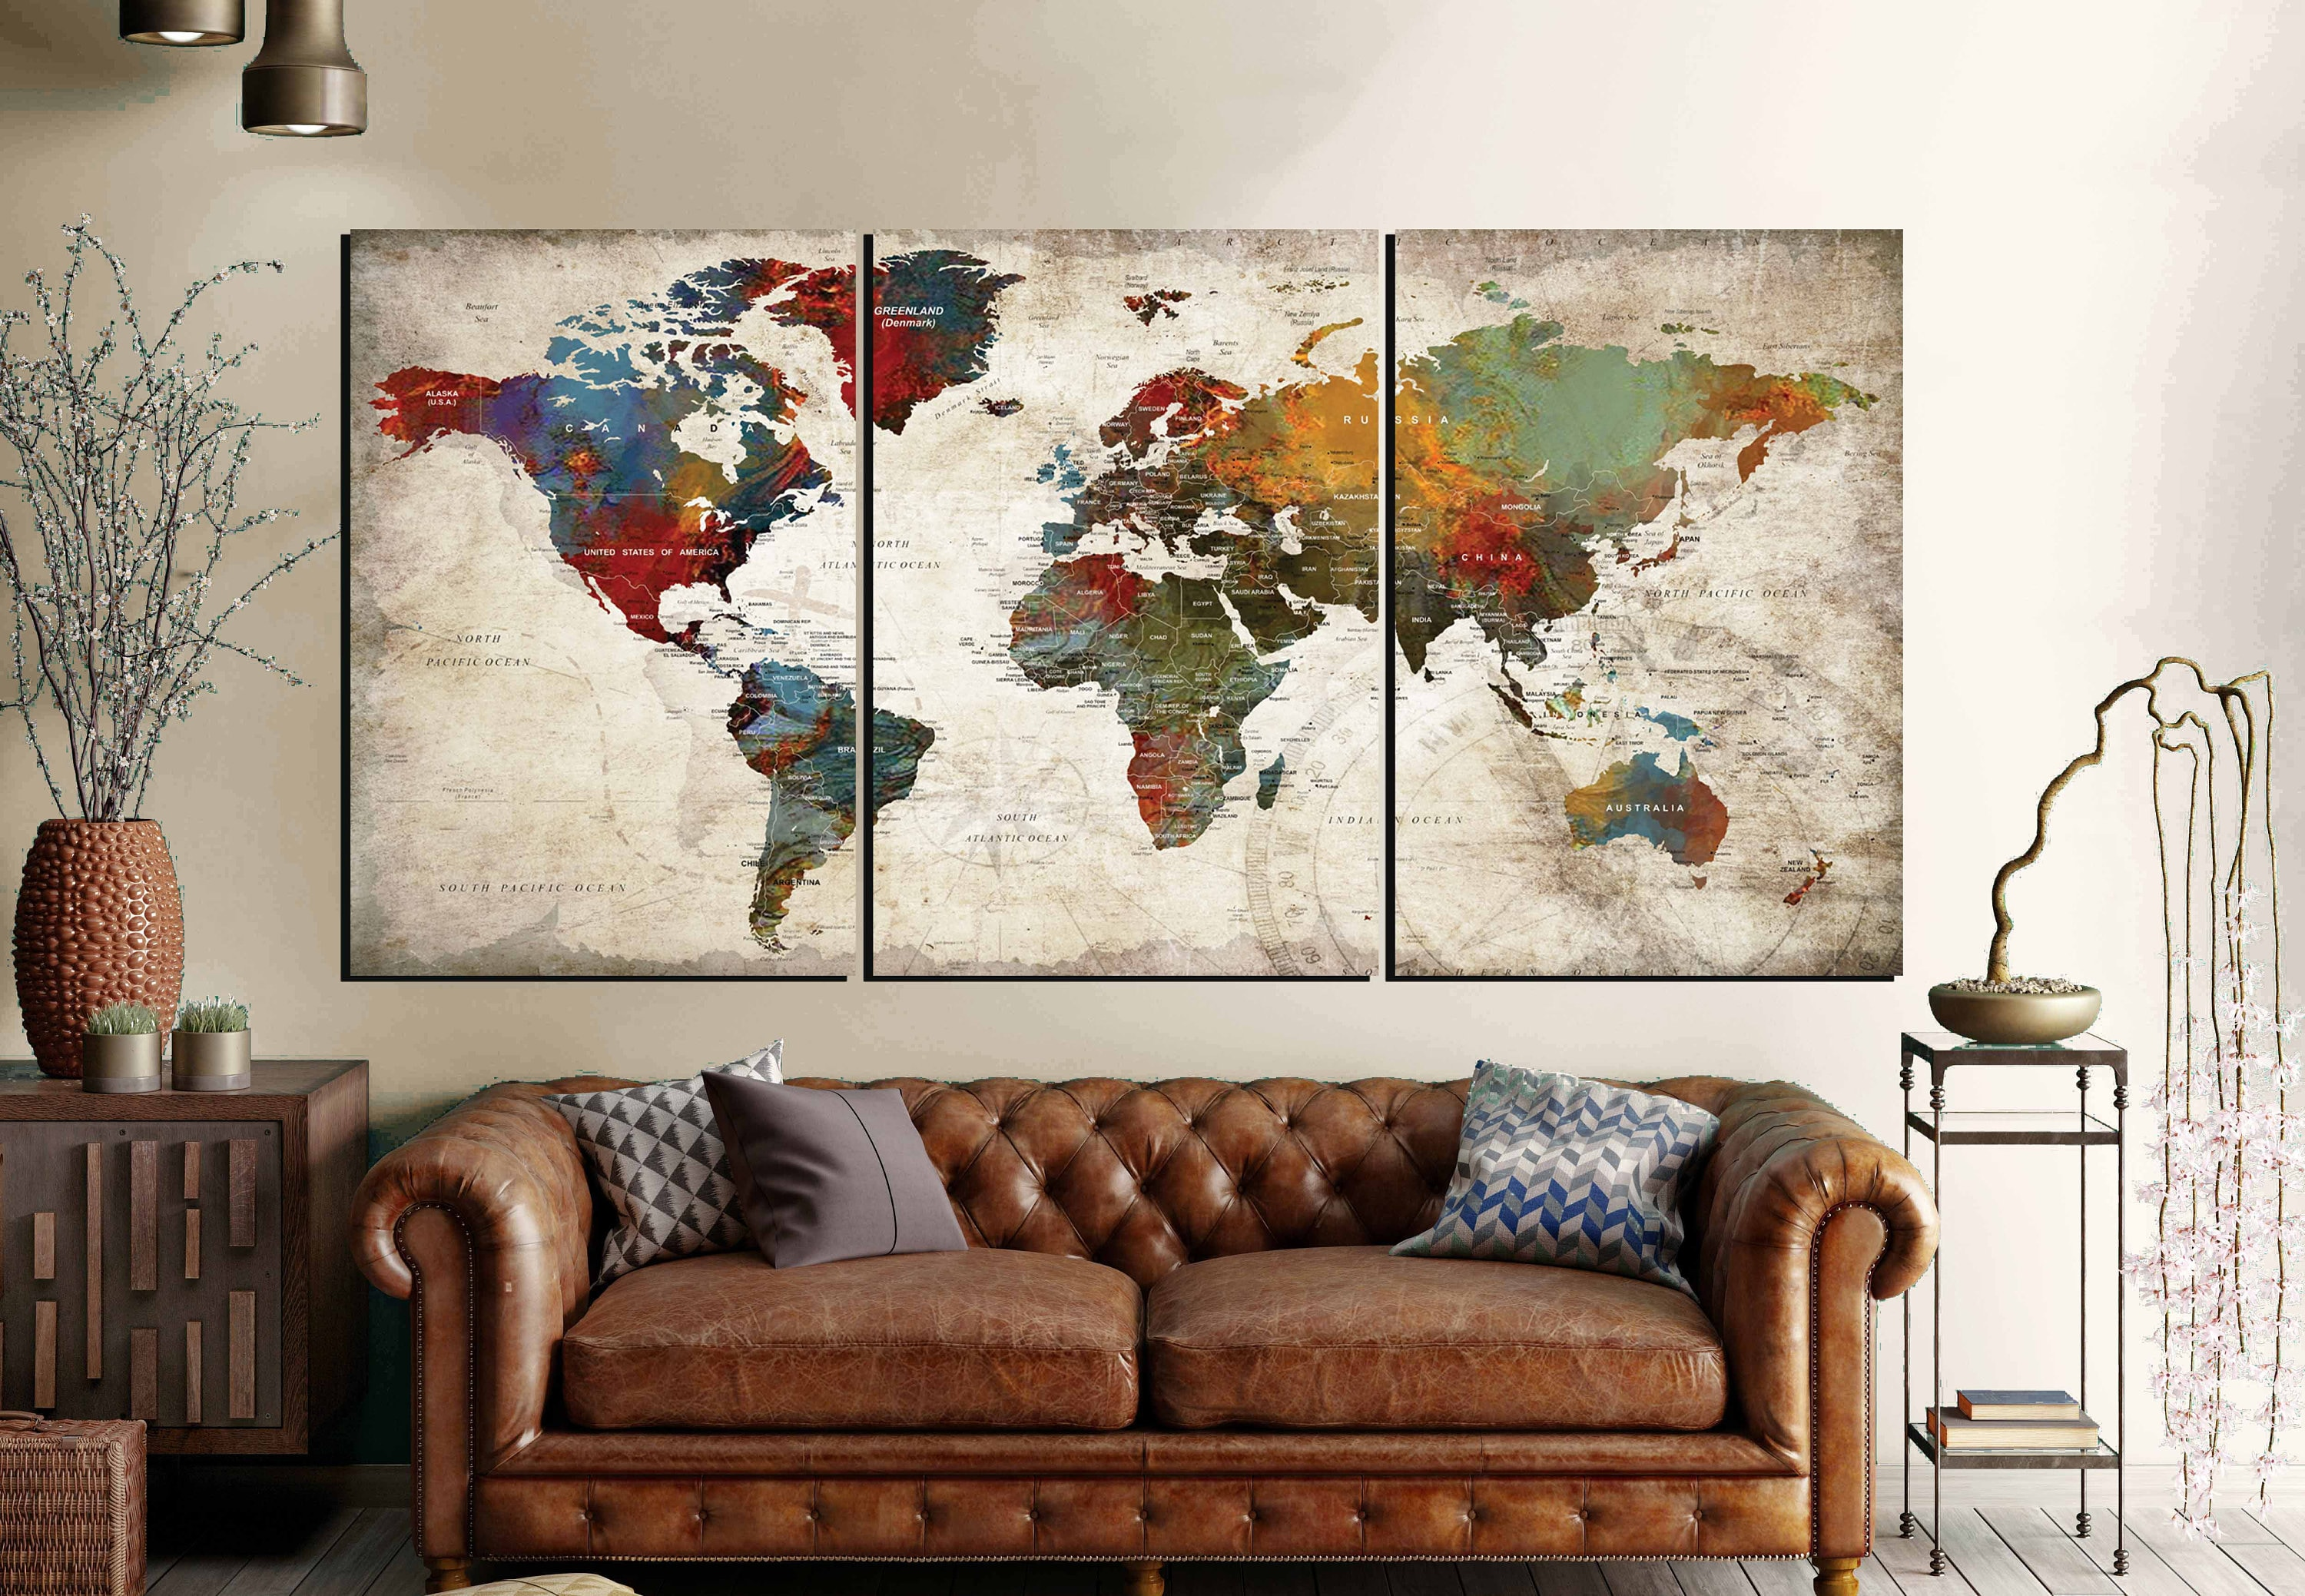 World map wall art 3 panel canvas artworld map large canvas panels world map wall art 3 panel canvas artworld map large canvas panelsworld map artworld map canvasworld map abstract artworld map push pin gumiabroncs Image collections